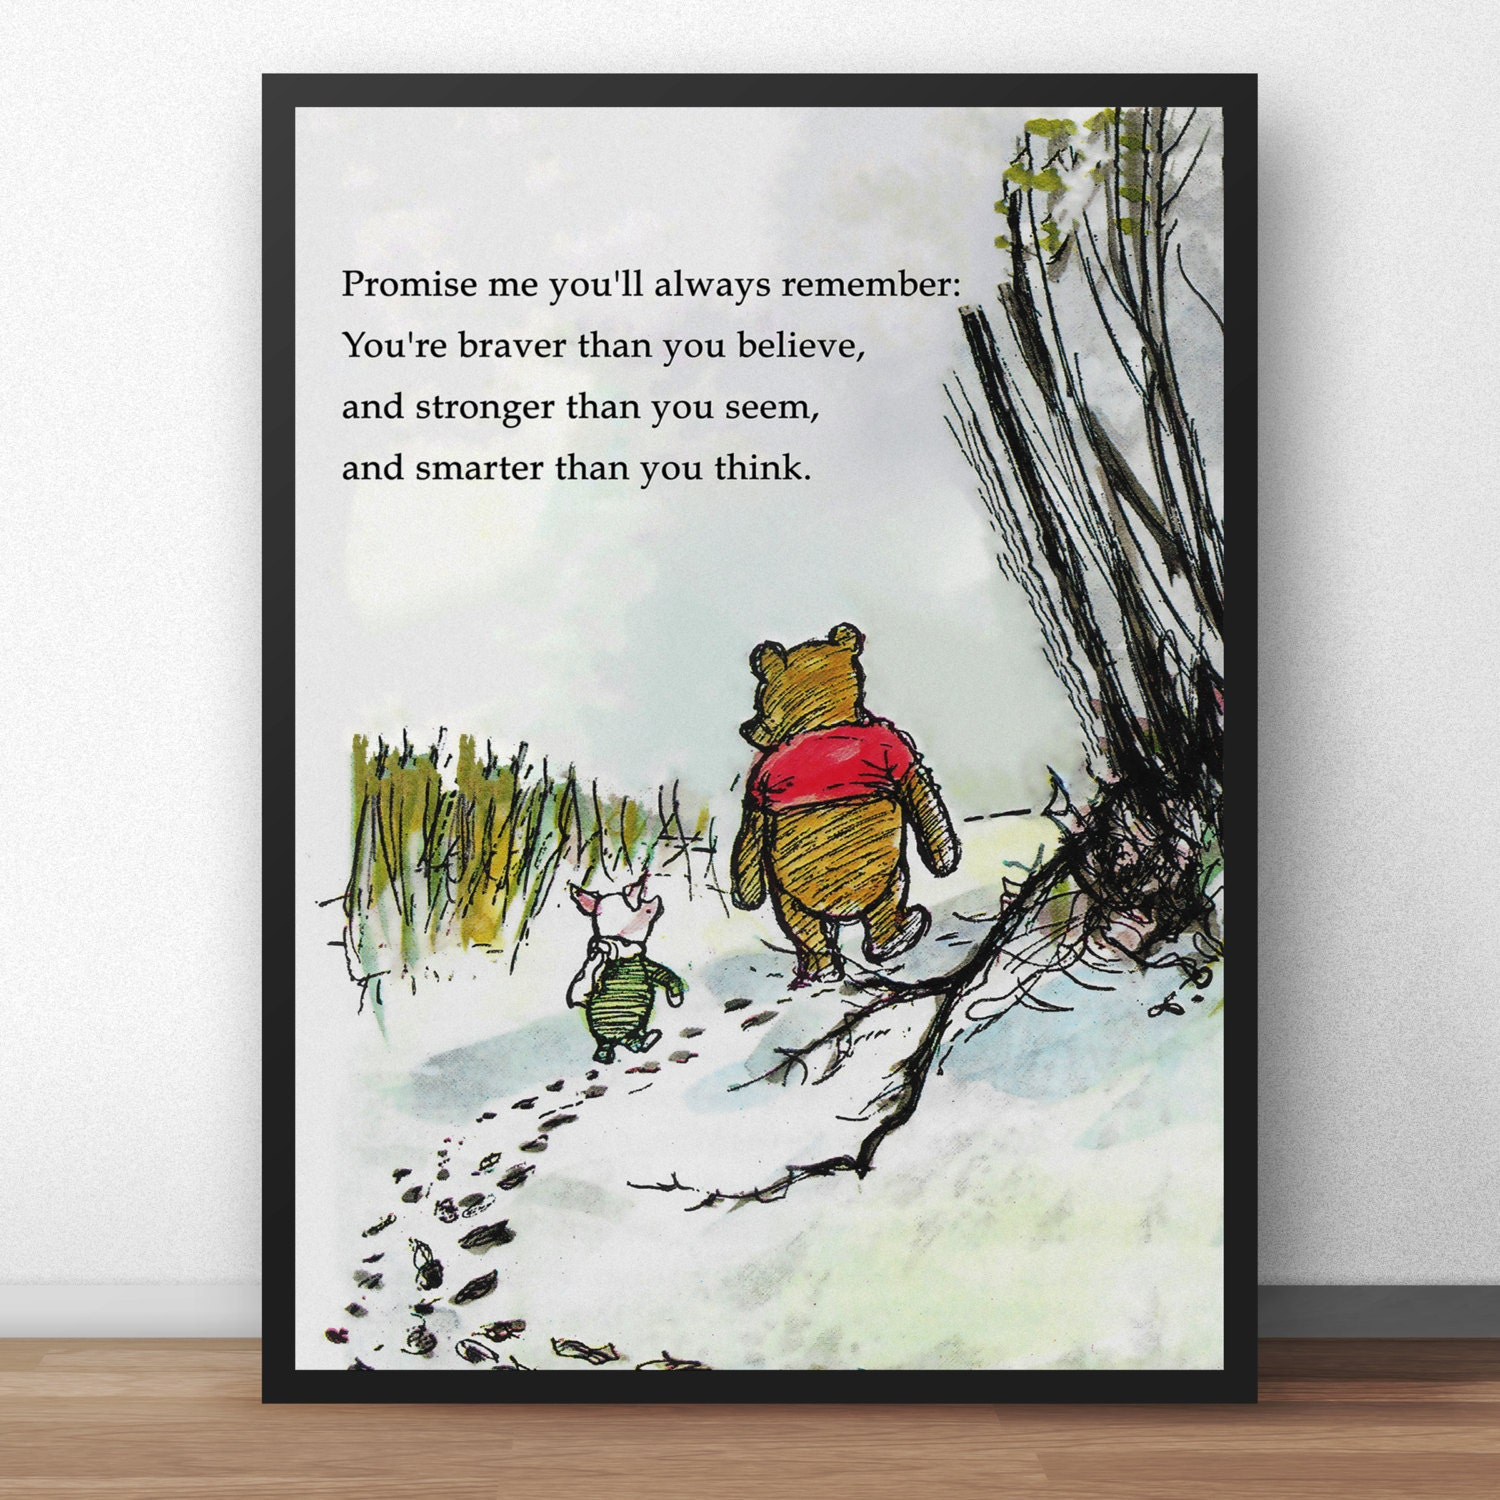 Winnie The Pooh Quote Art: Promise Me You'll Always Remember You're Braver Than